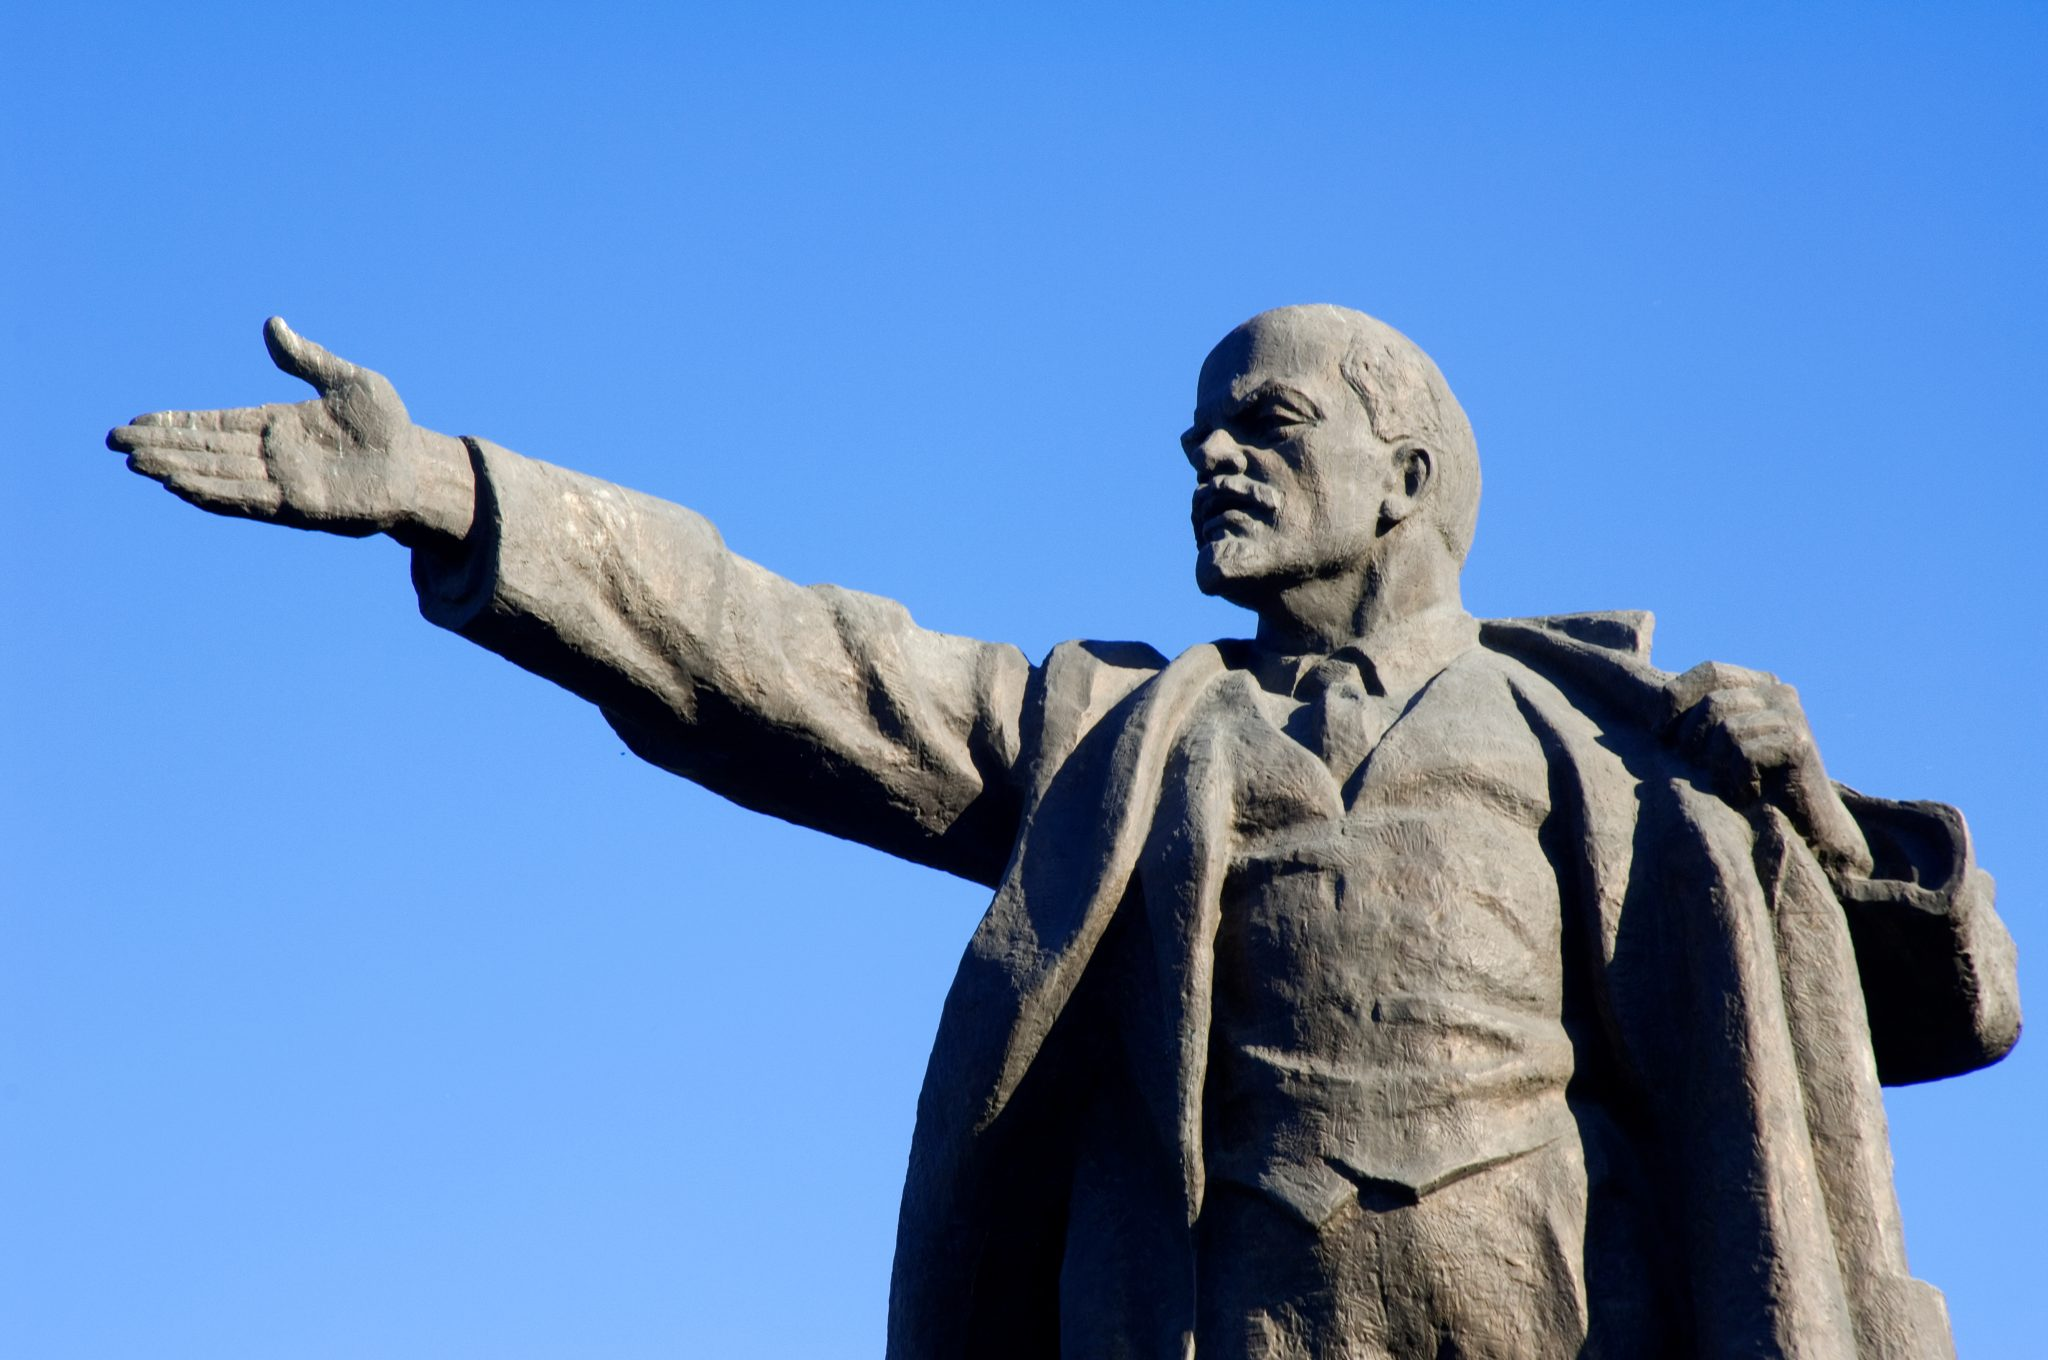 Vladimir Ilyich Lenin Makes a Revolution | The American Spectator | USA News and PoliticsThe American Spectator | USA News and Politics